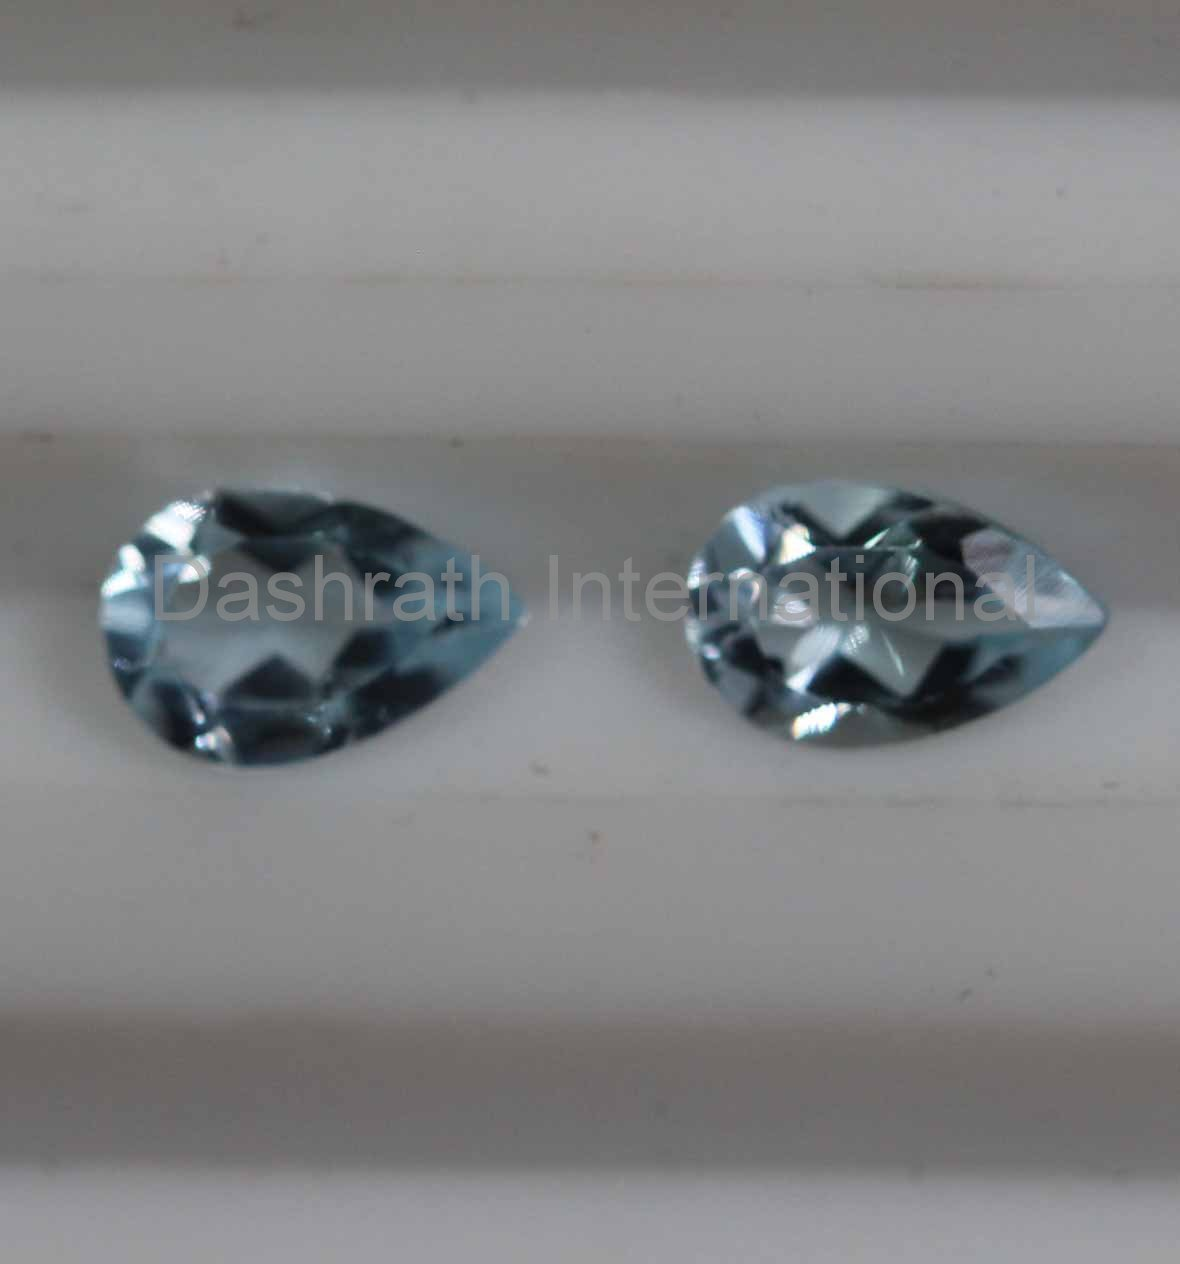 8x6mm  Natural Sky Blue Topaz Faceted Cut Pear 25 Pieces Lot  Top Quality Loose Gemstone